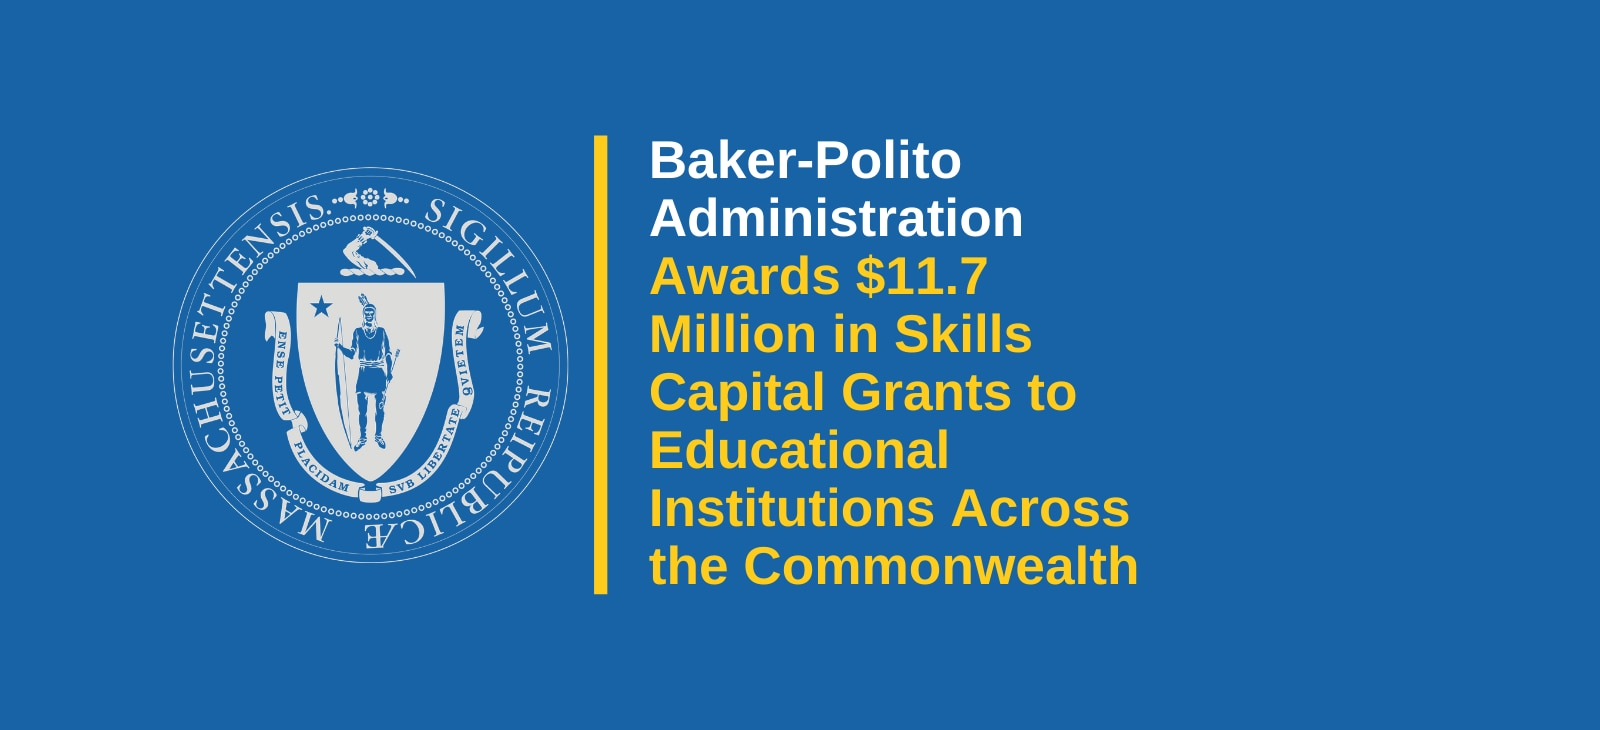 Baker-Polito Administration Awards $11.7 Million in Skills Capital Grants to Educational Institutions Across the Commonwealth